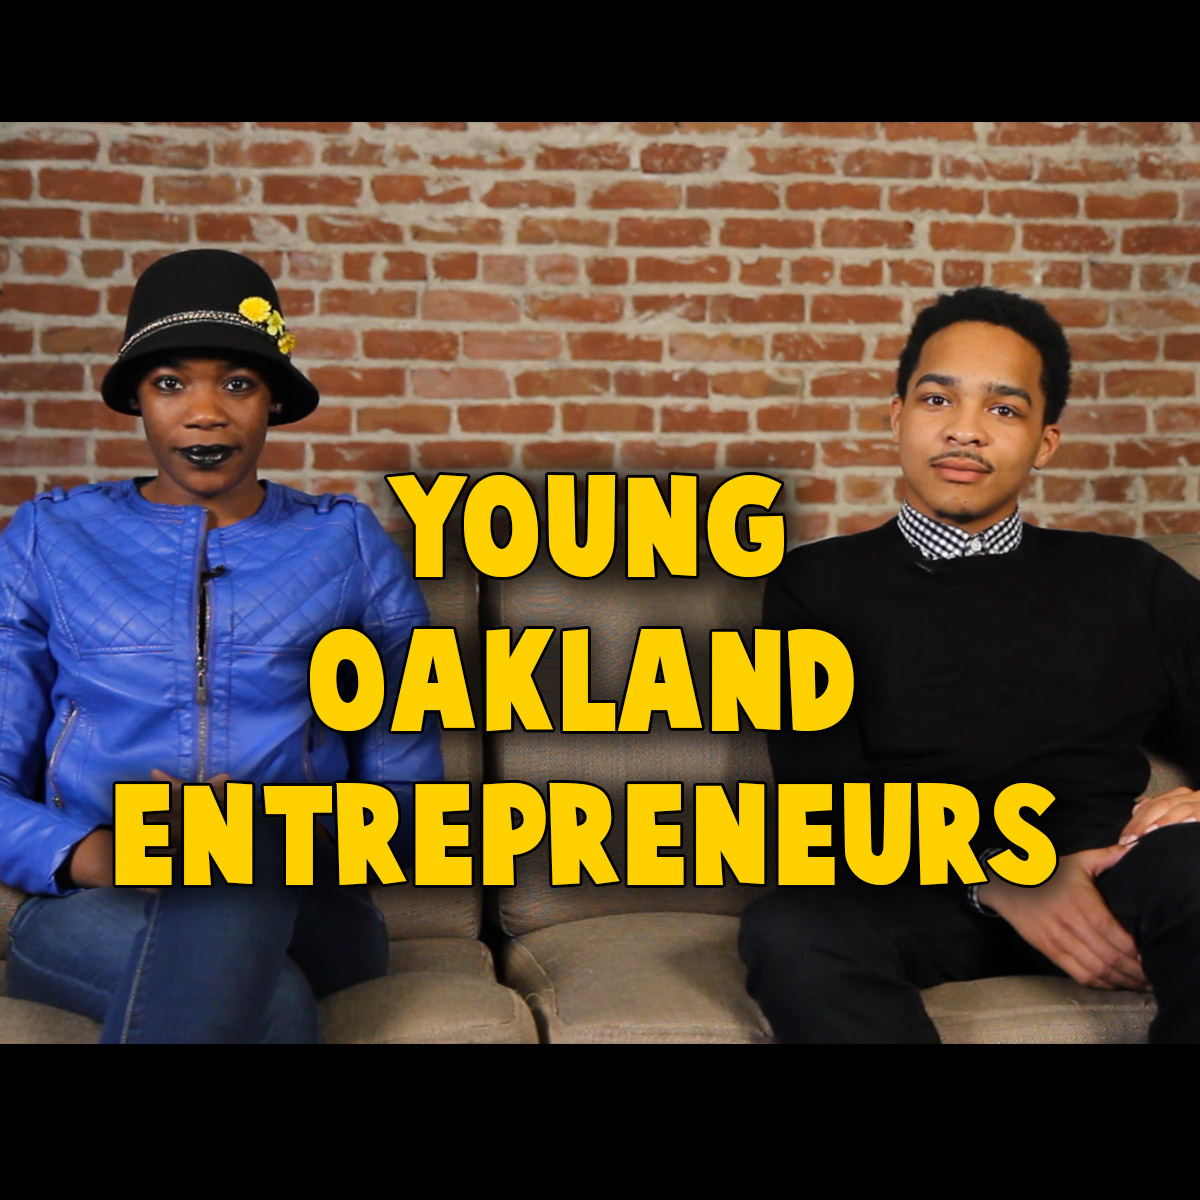 Beyond Tech: Oakland's Young Entrepreneurs